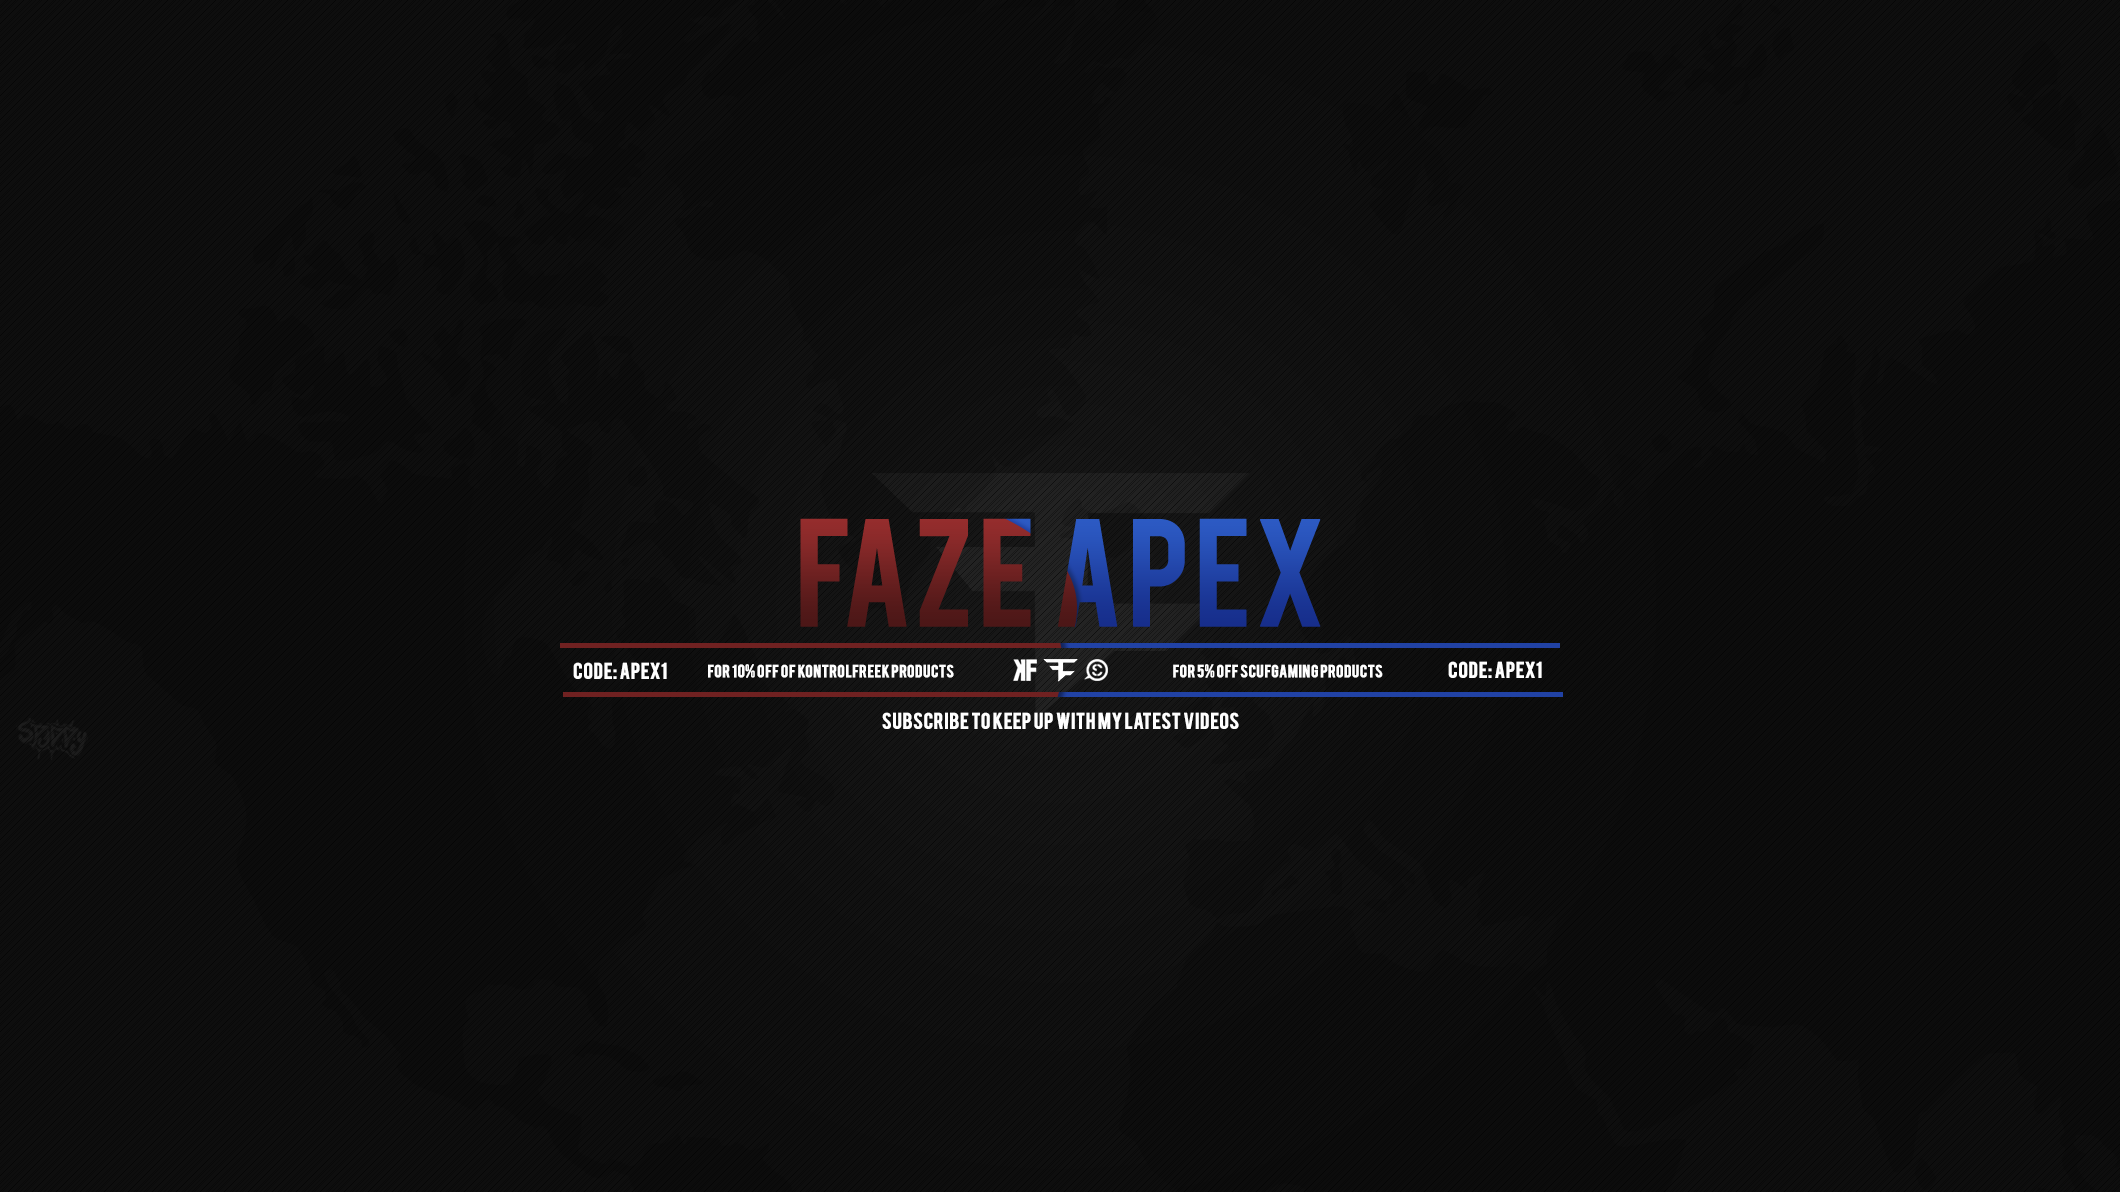 FaZe Apex YouTube Header by SilentSpud on DeviantArt